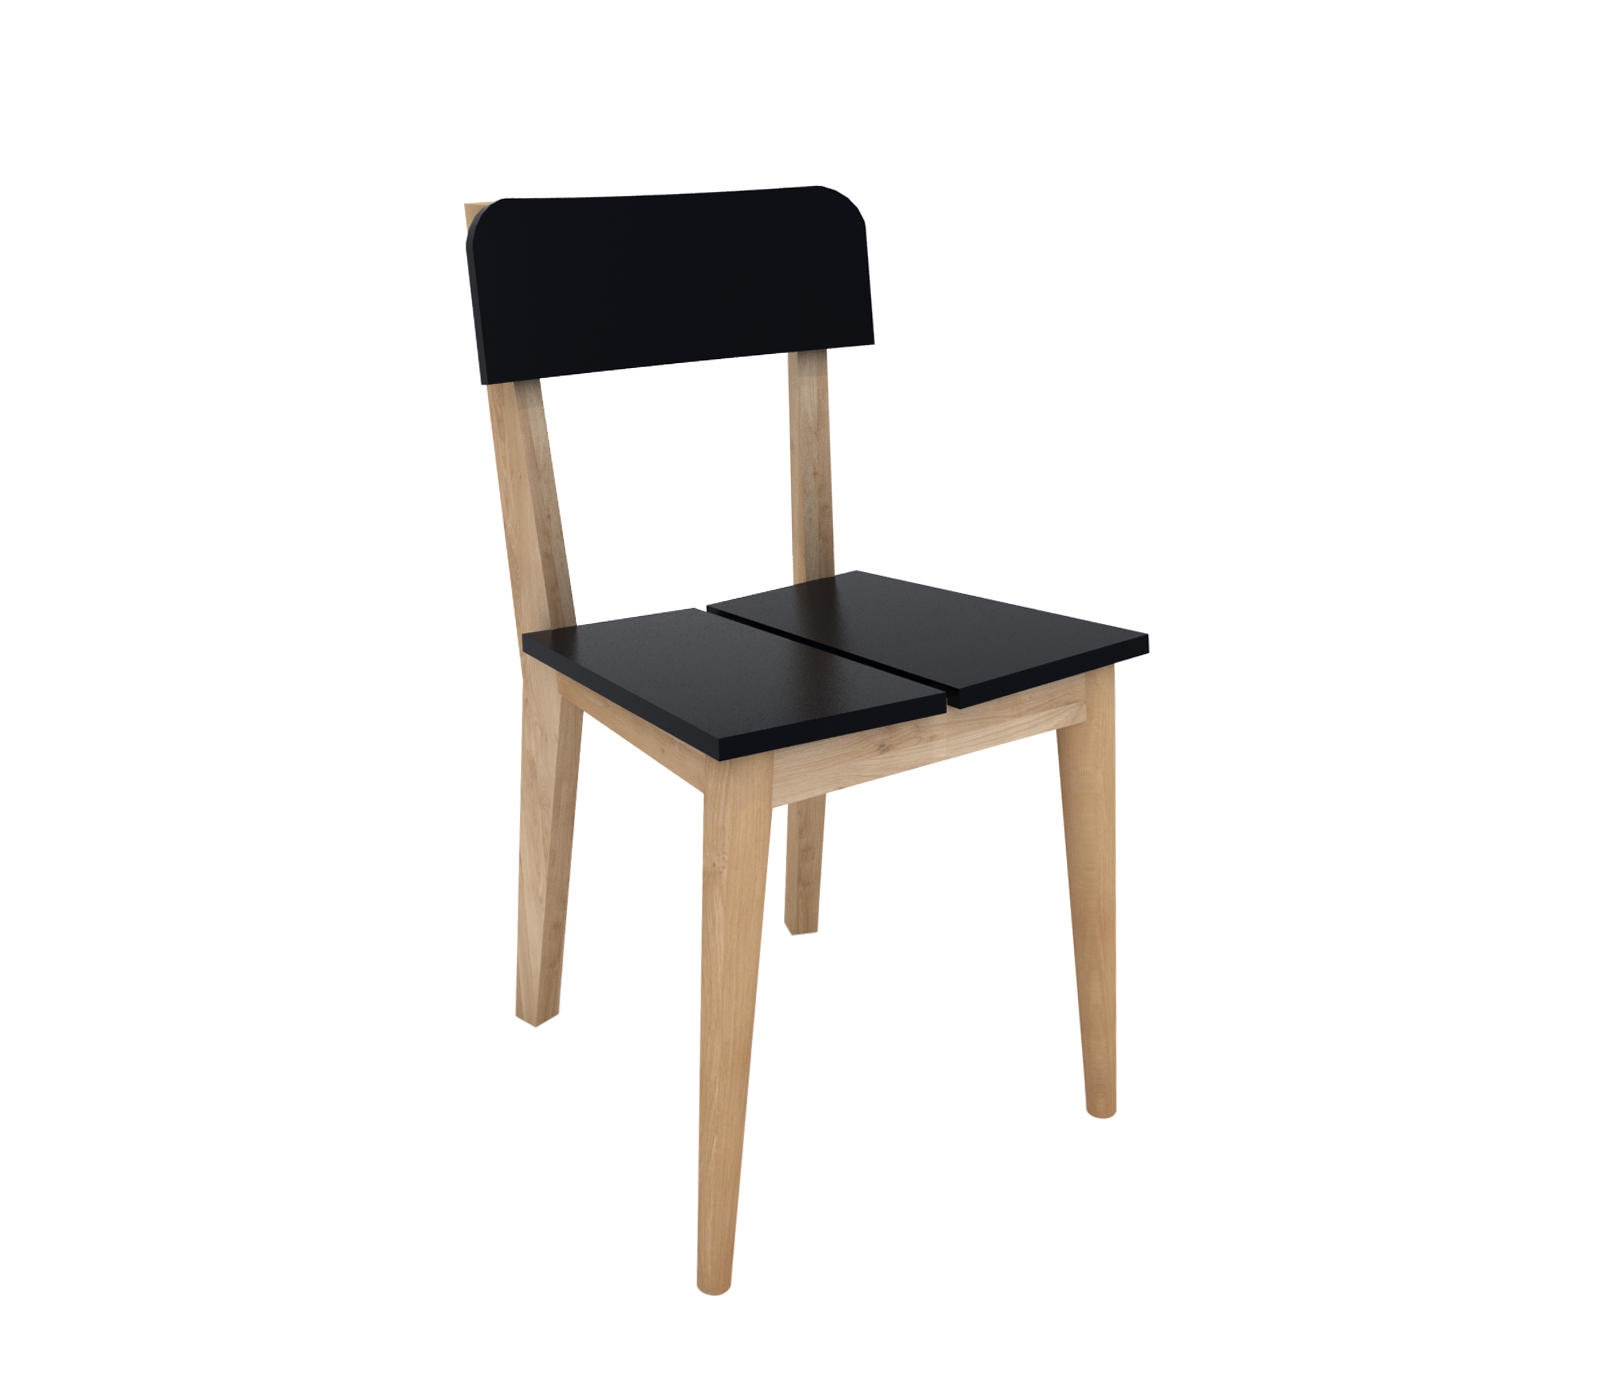 OAK M CHAIR Restaurant chairs from Ethnicraft